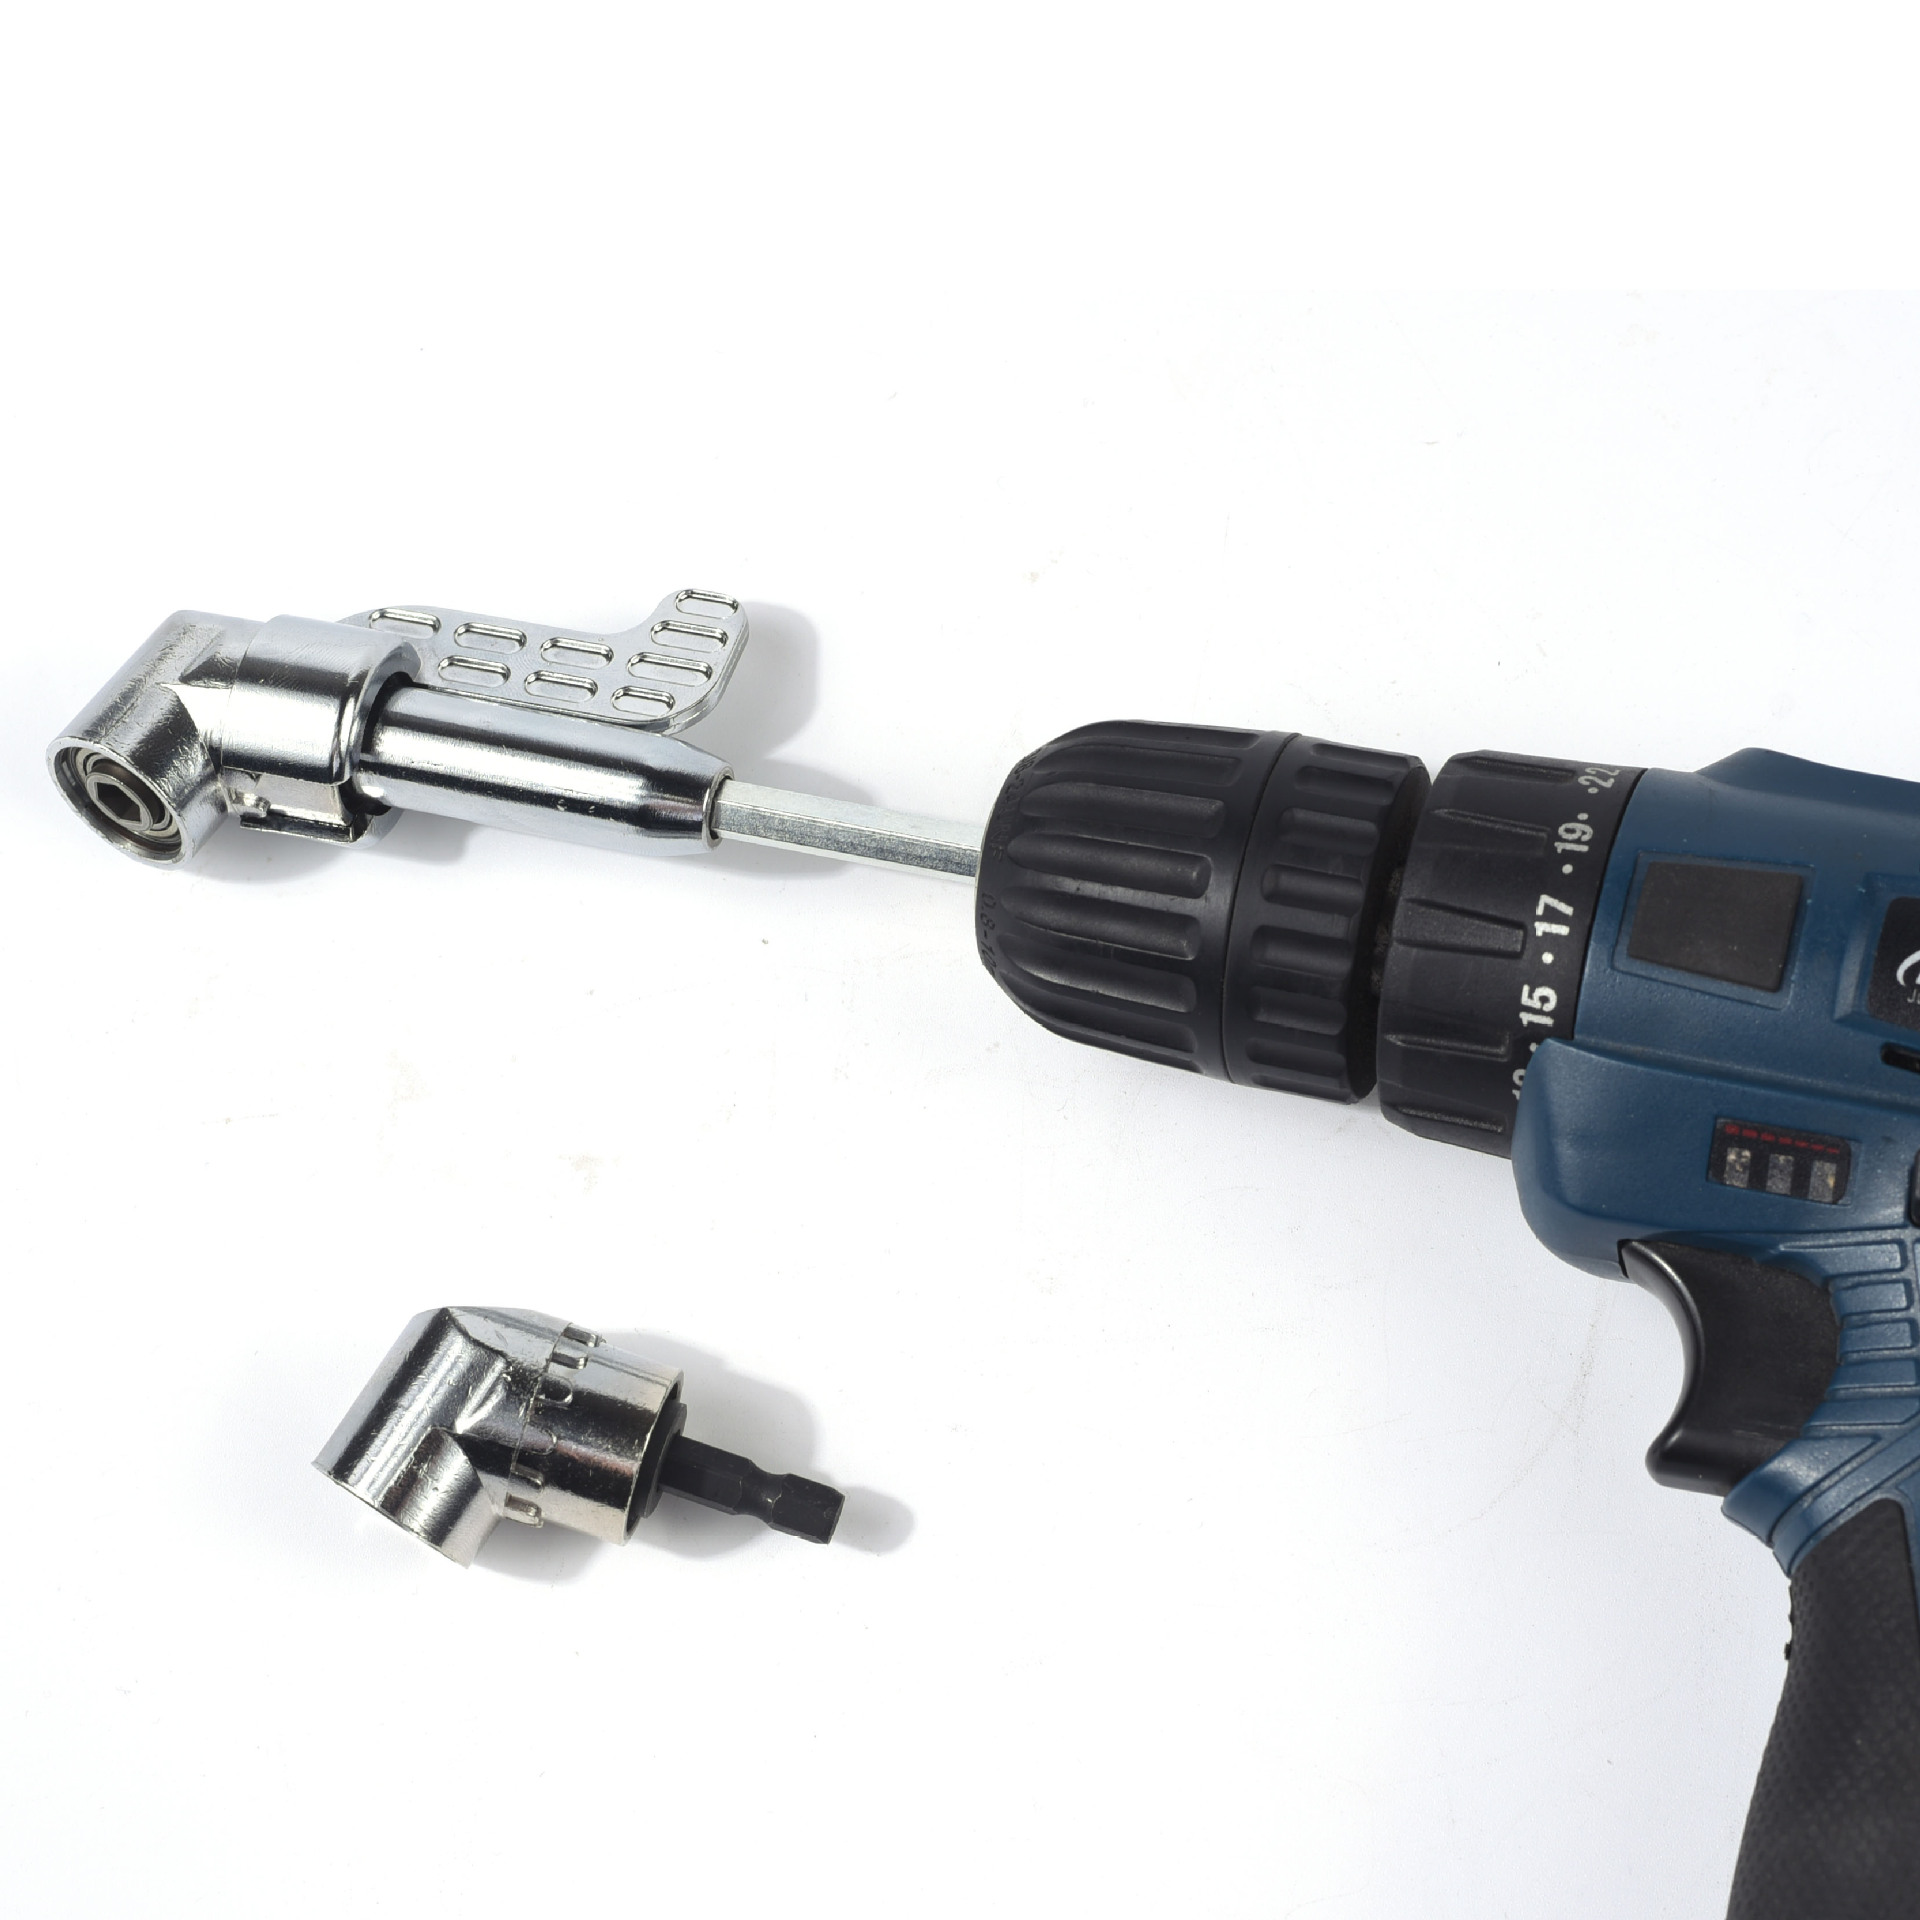 105 Degree Right Angle Drill Extension Shank Quick Change Driver Drilling Screwdriver Magnetic 1/4 Hex Socket Close Corner Tool